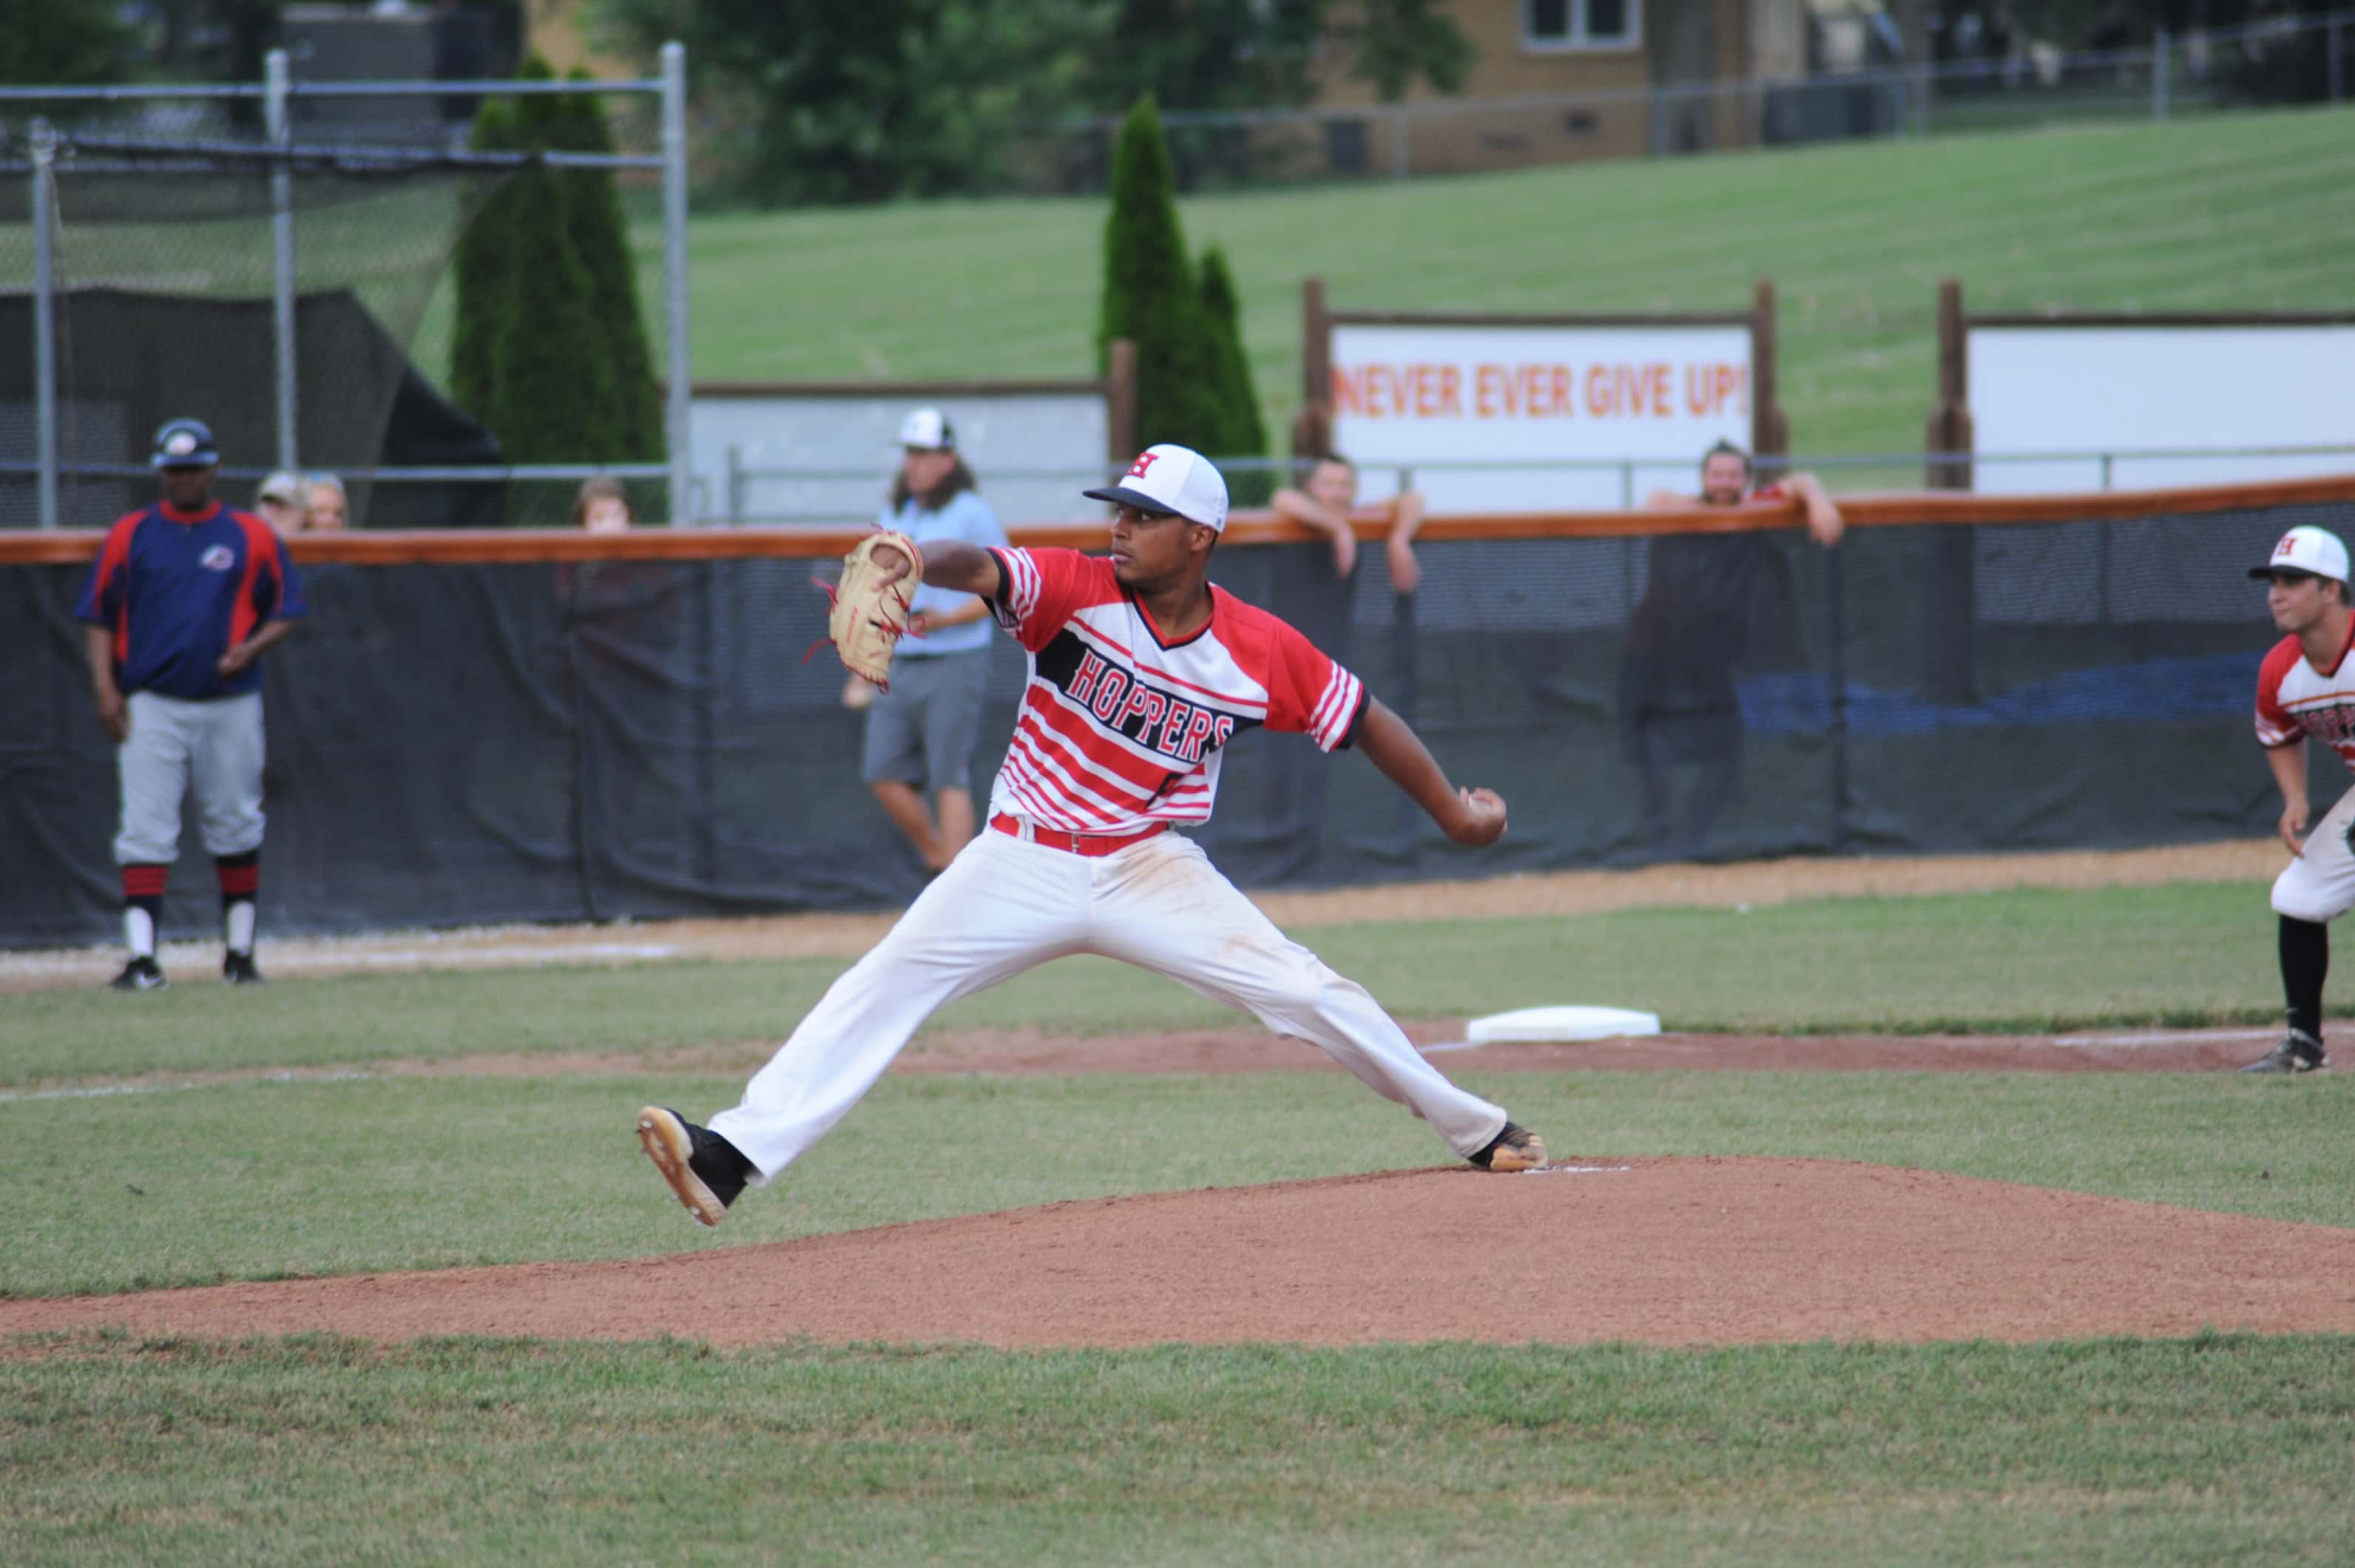 PHOTOS – Hoptown Hoppers 6 Paducah Chiefs 4